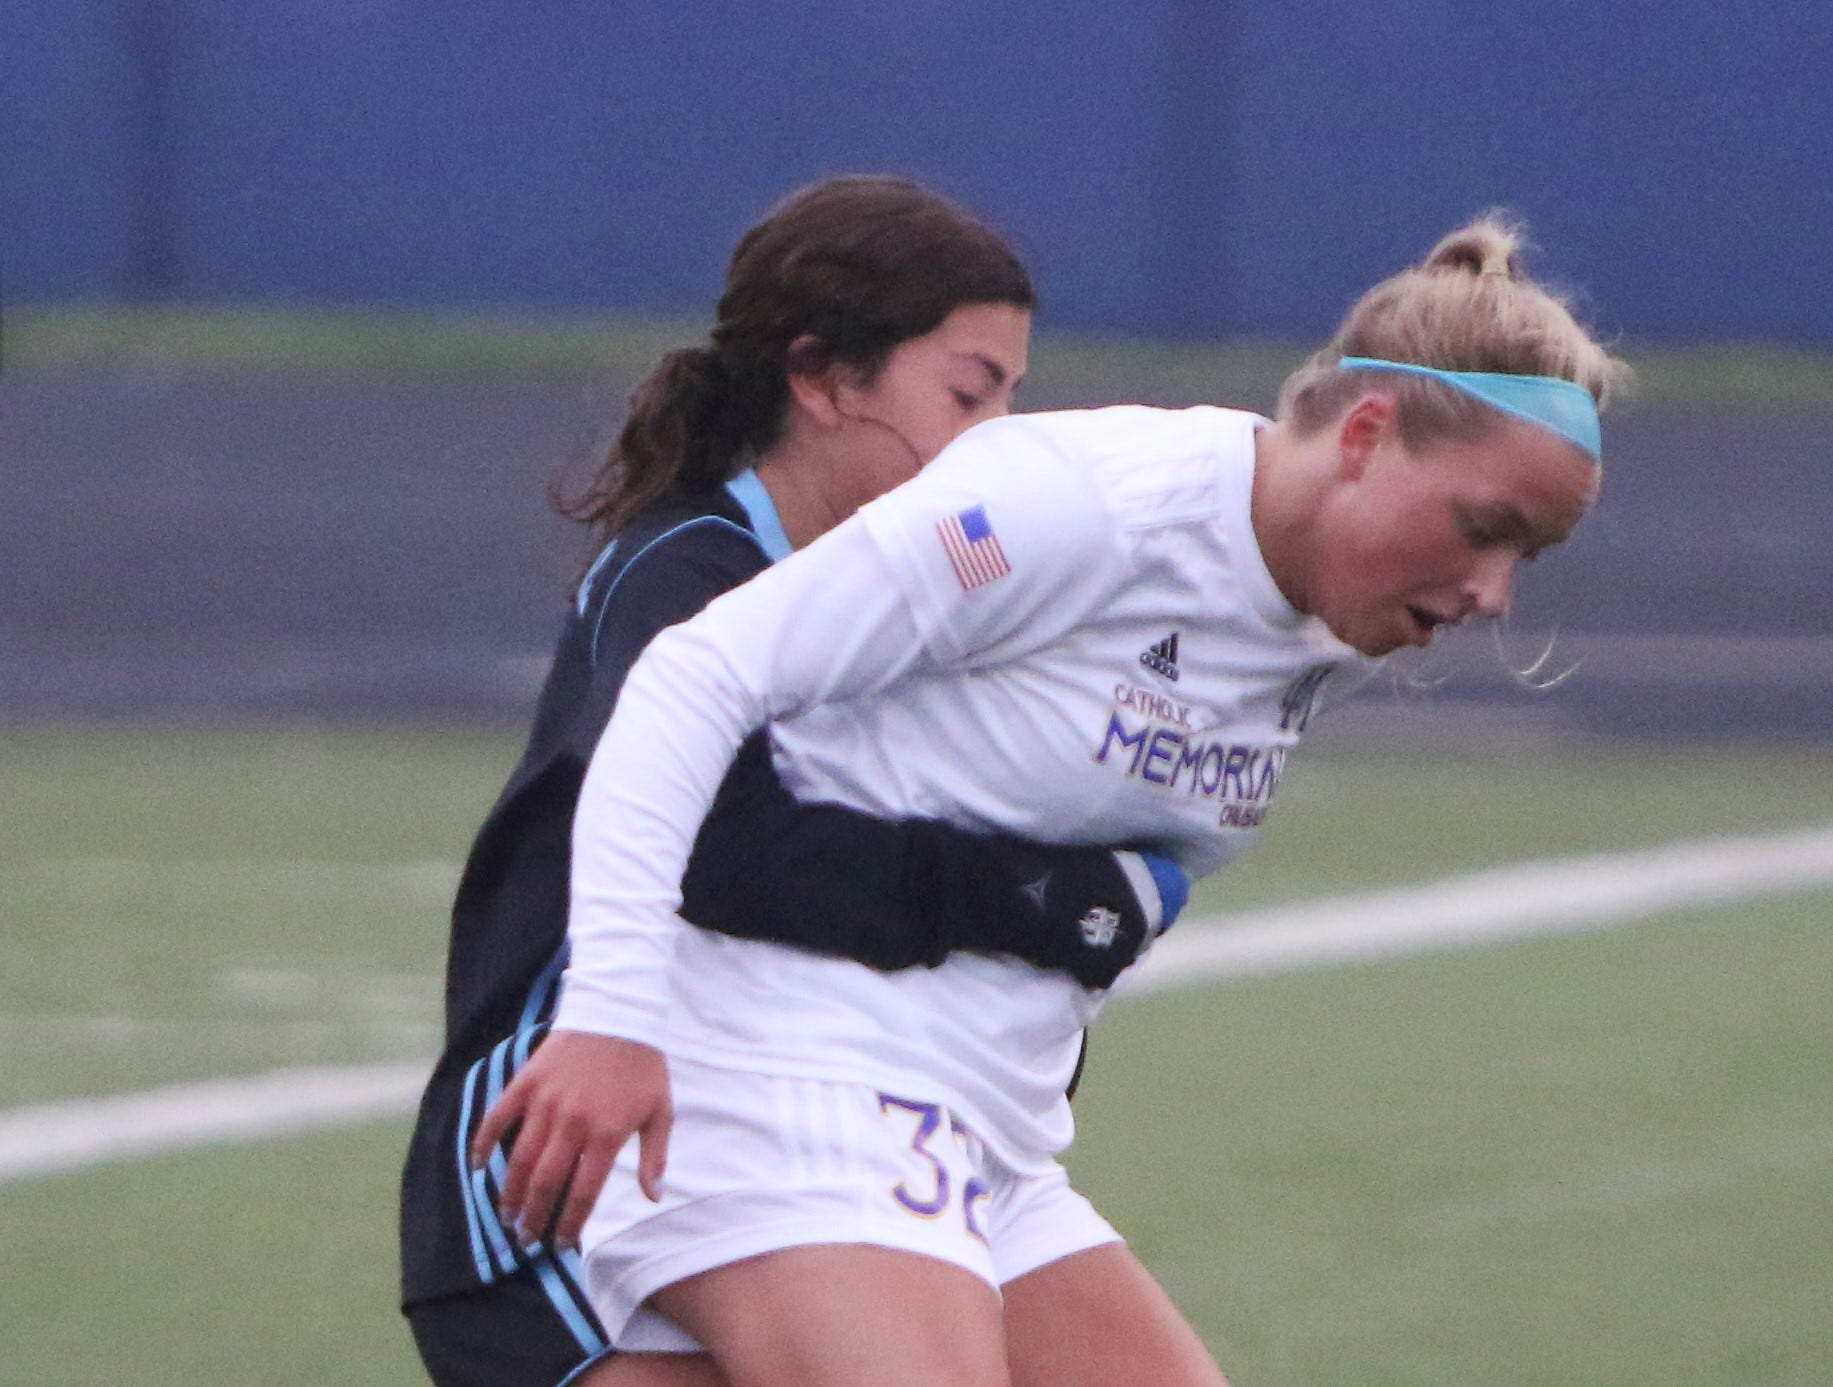 Catholic Memorial forward Abby Piette (right) is fouled by Brookfield Central defender Ryann Locante during a game on May 2, 2019.